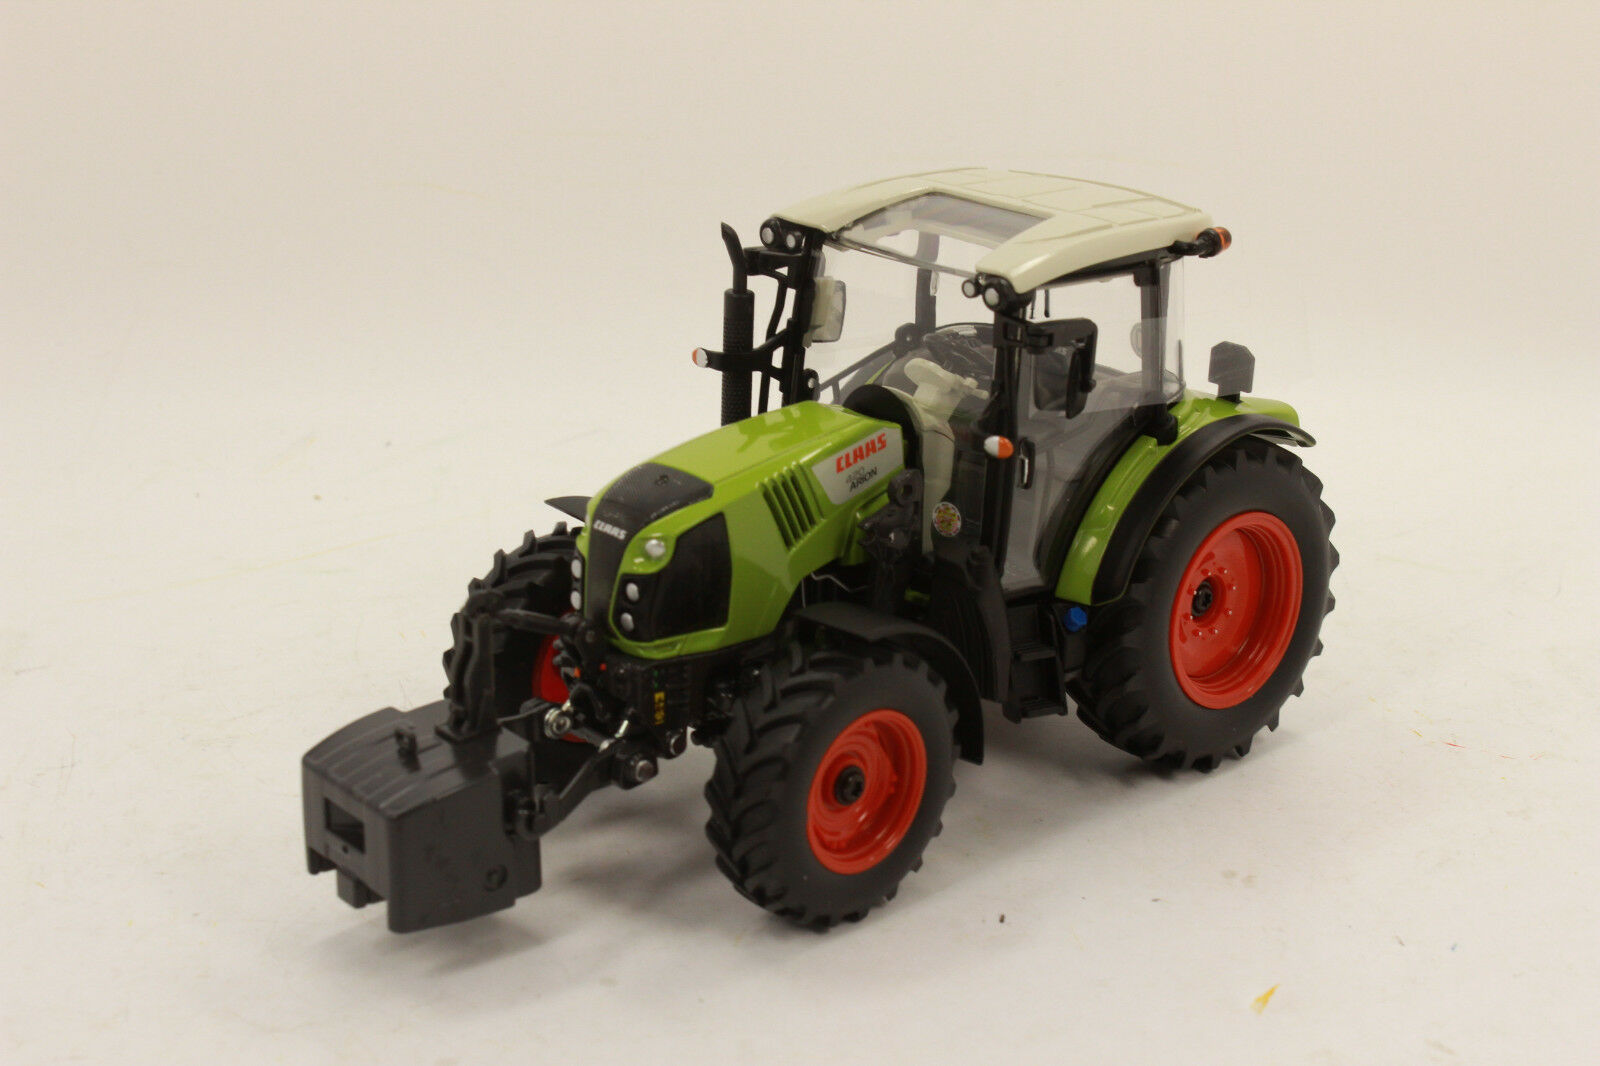 Wiking 778 11 Claas Arion 420 Tracteur 077811 1 32